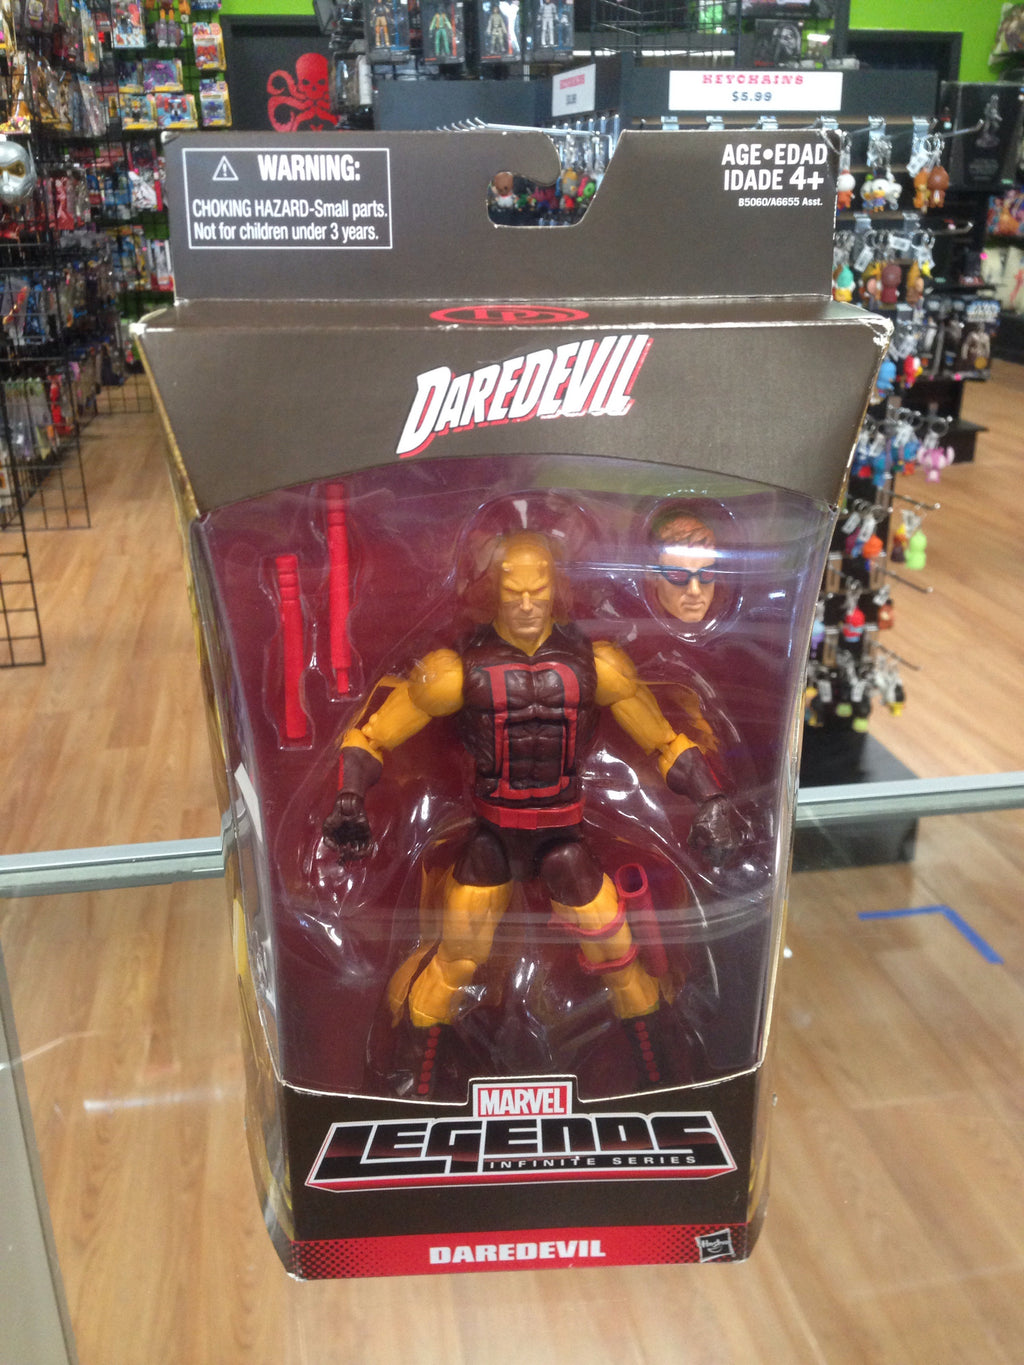 Marvel Legends Walgreens Exclusive Daredevil Hasbro